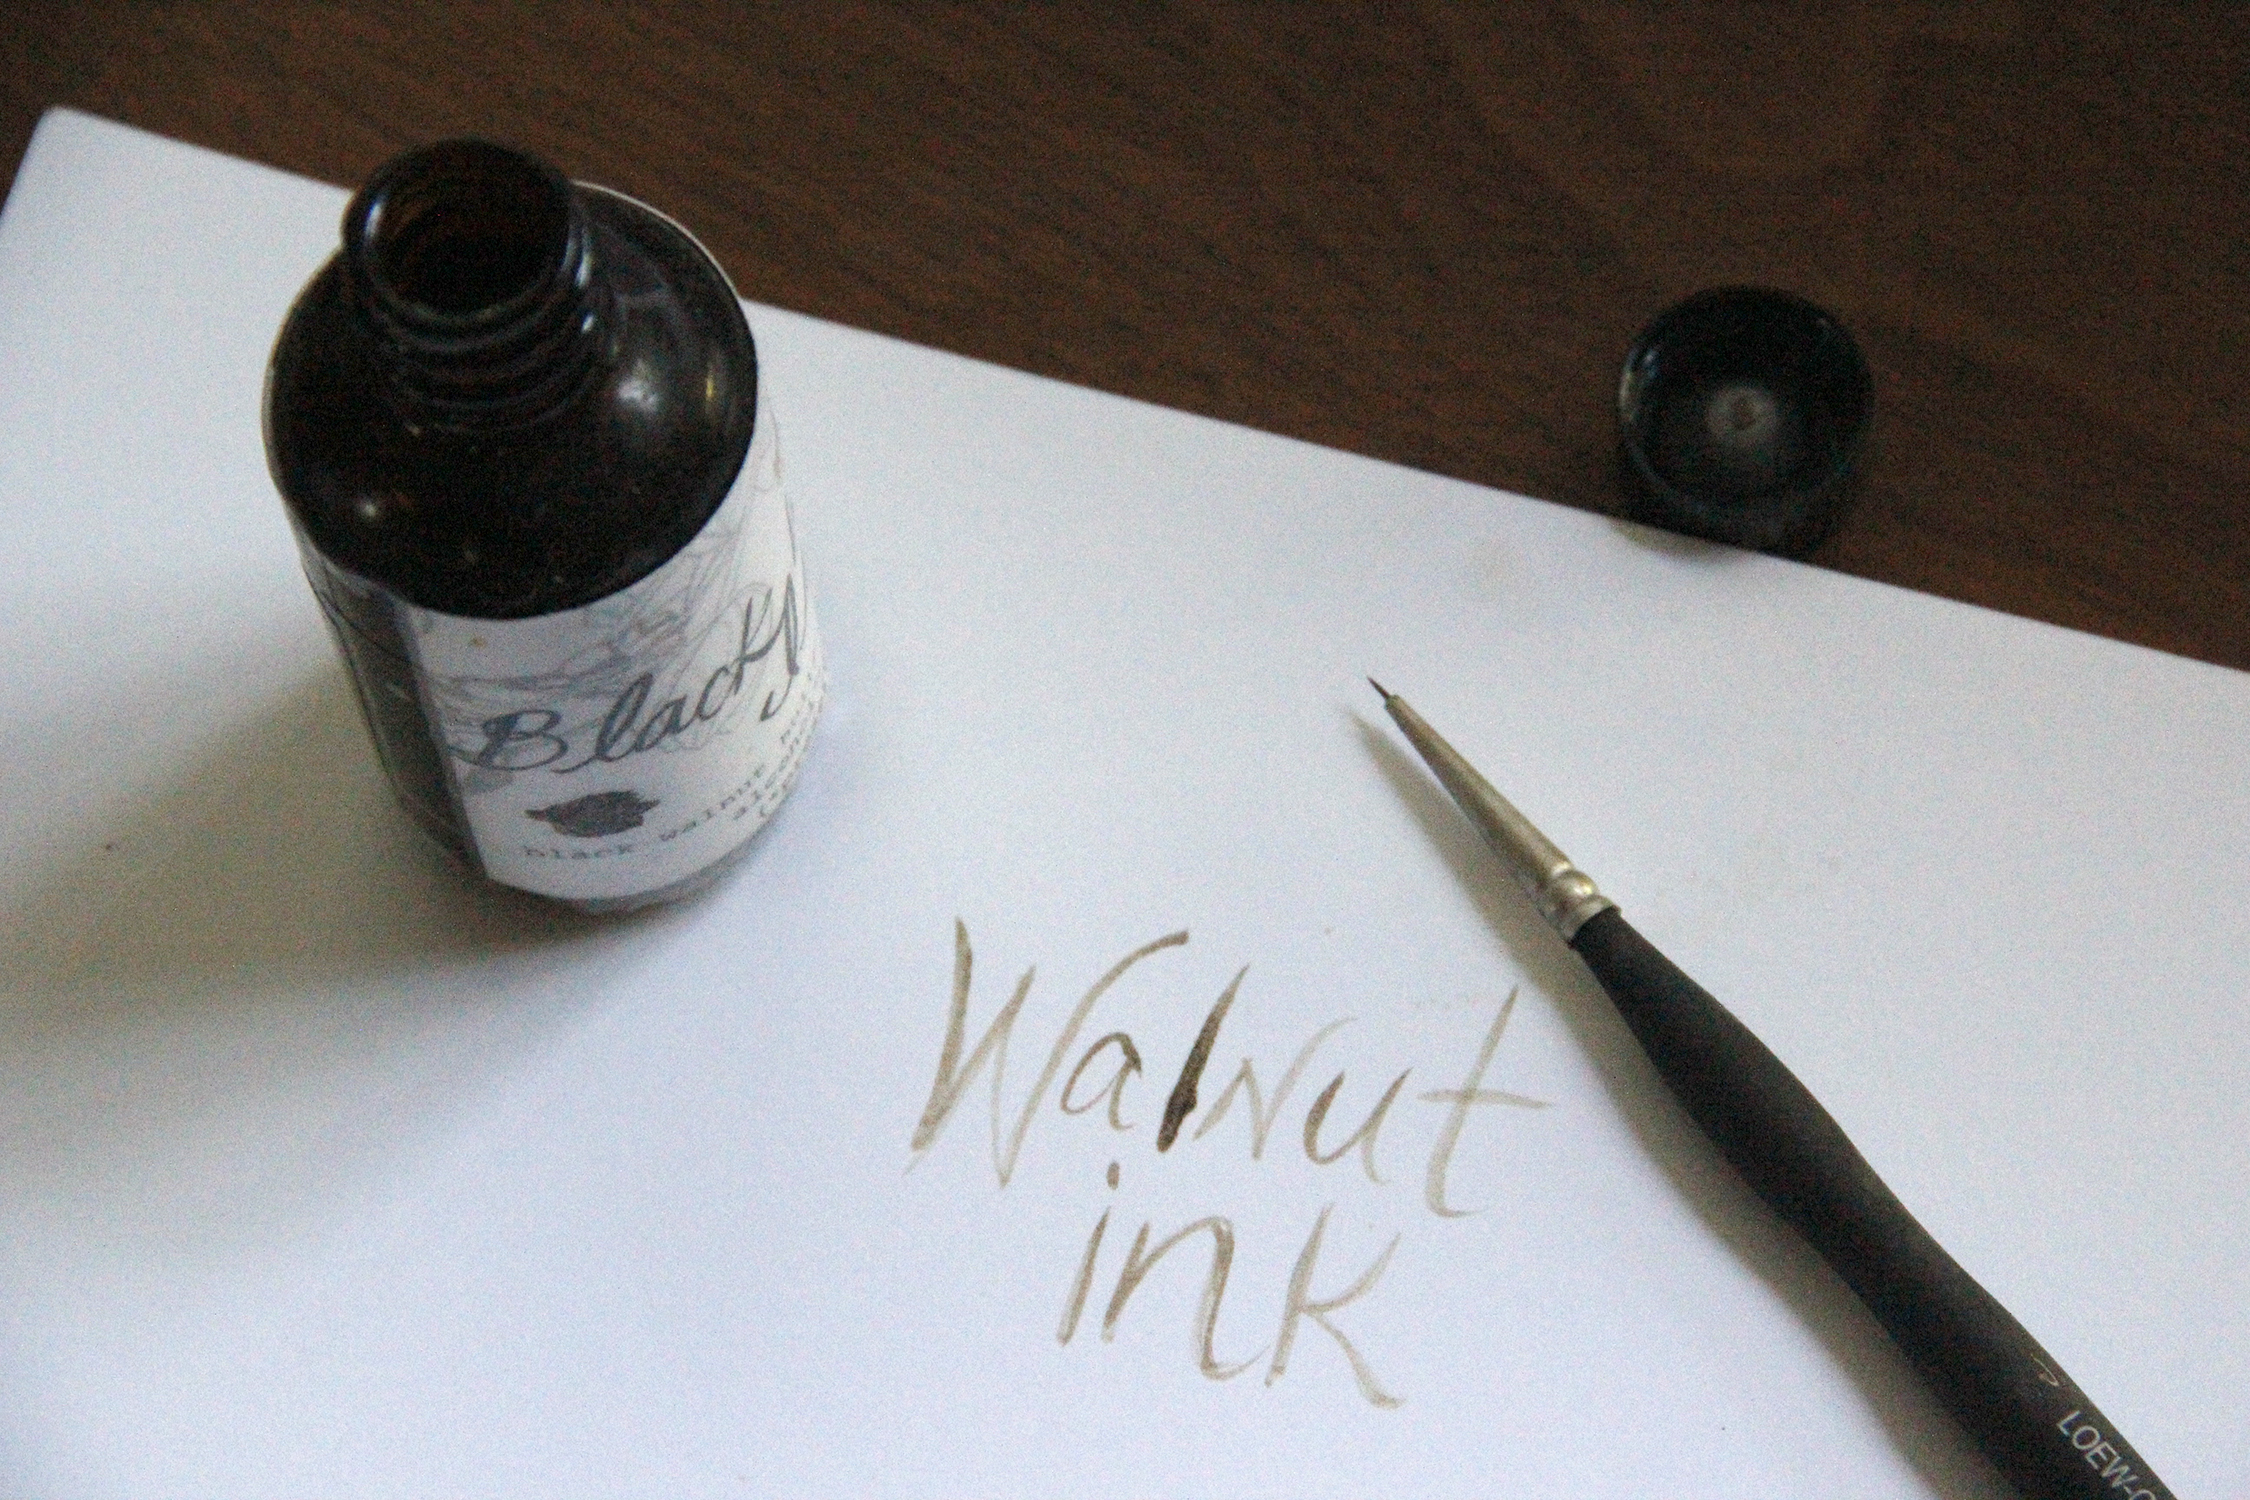 Forage the greenway for walnuts and make some ink today.